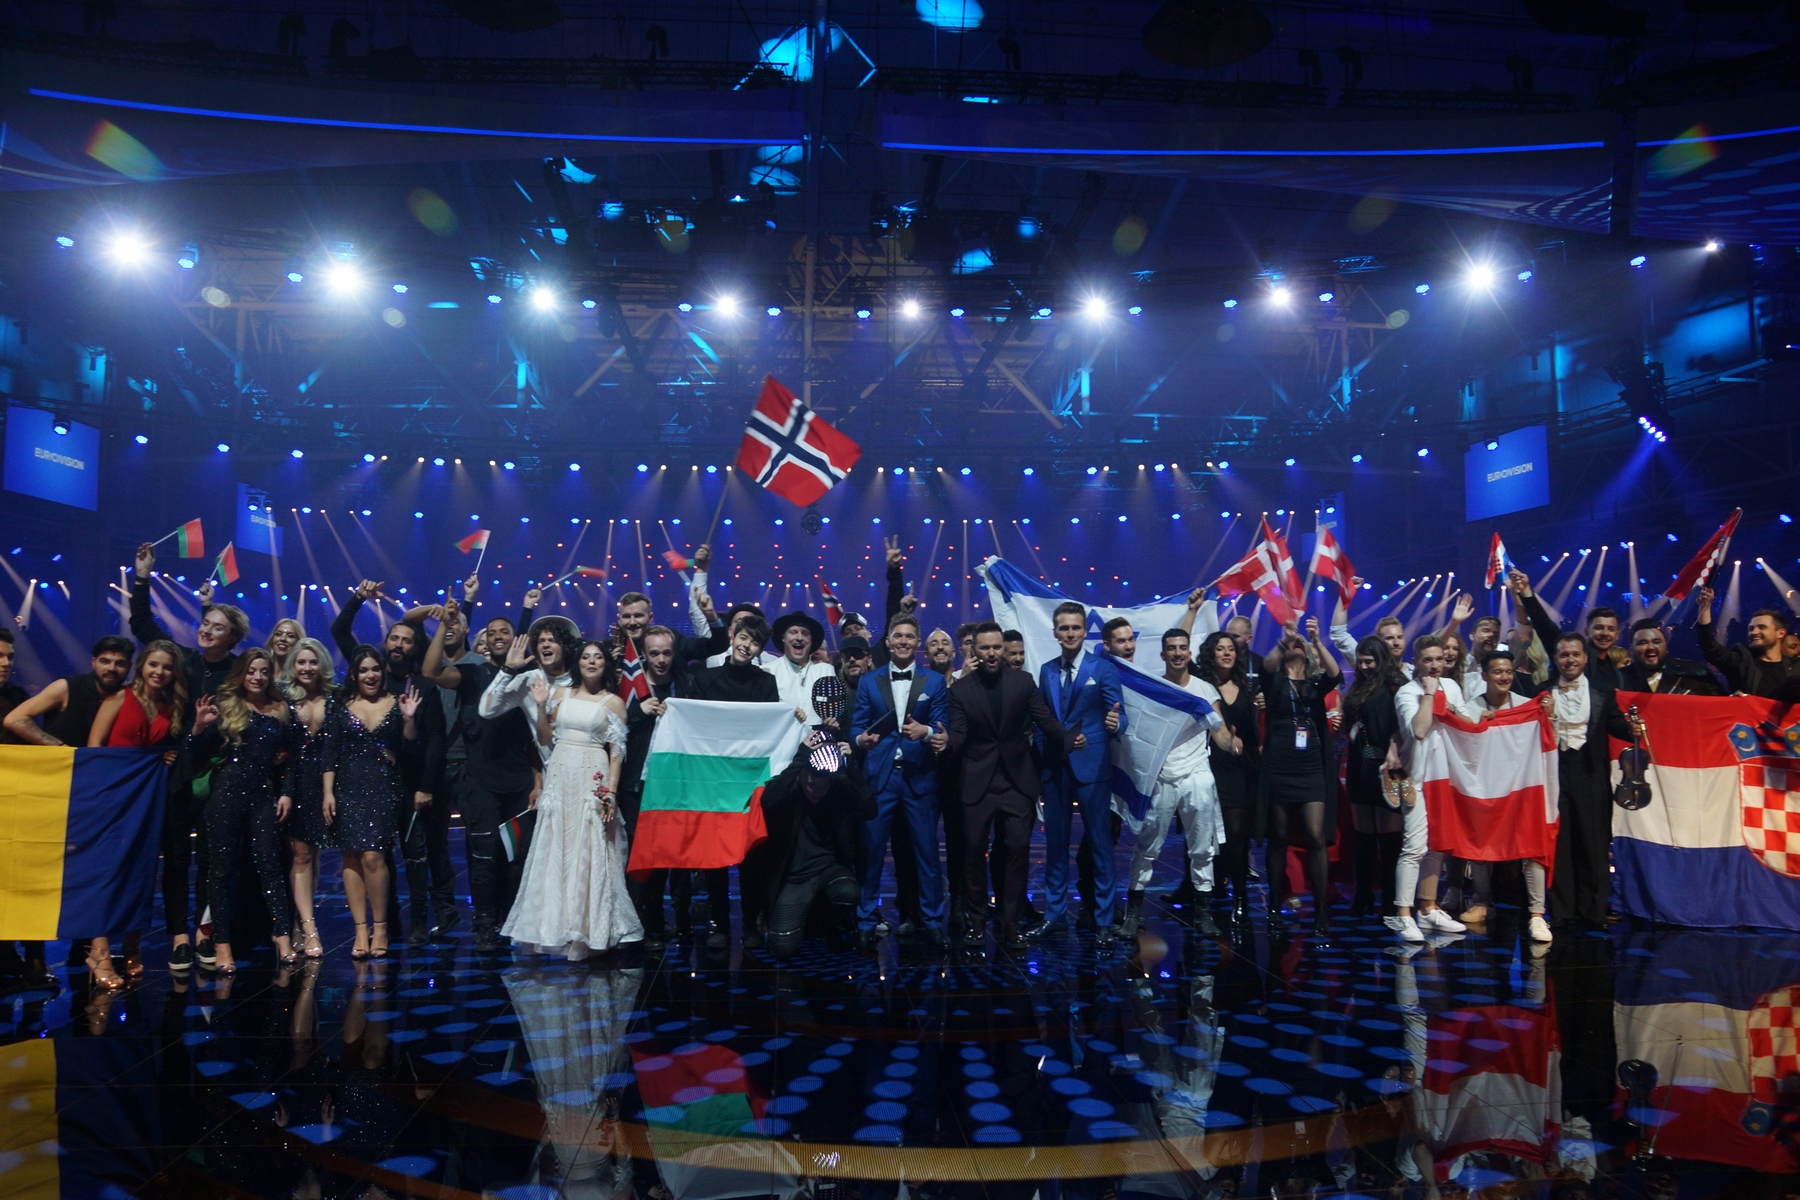 Poor but better than 2016, the 2017 Eurovision TV ratings in the US